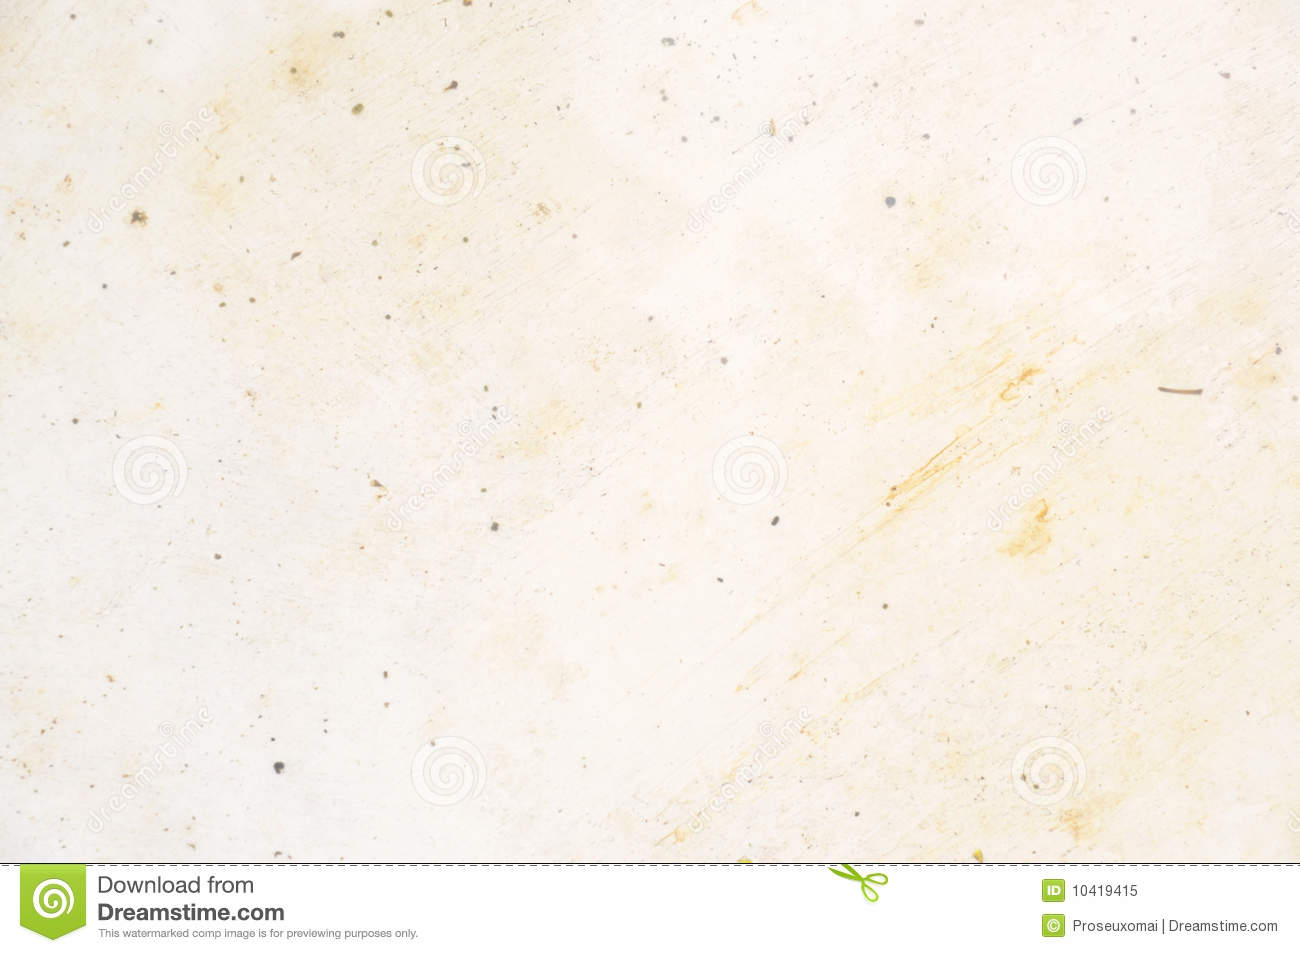 Speckled BackgroundWhite Speckled Background